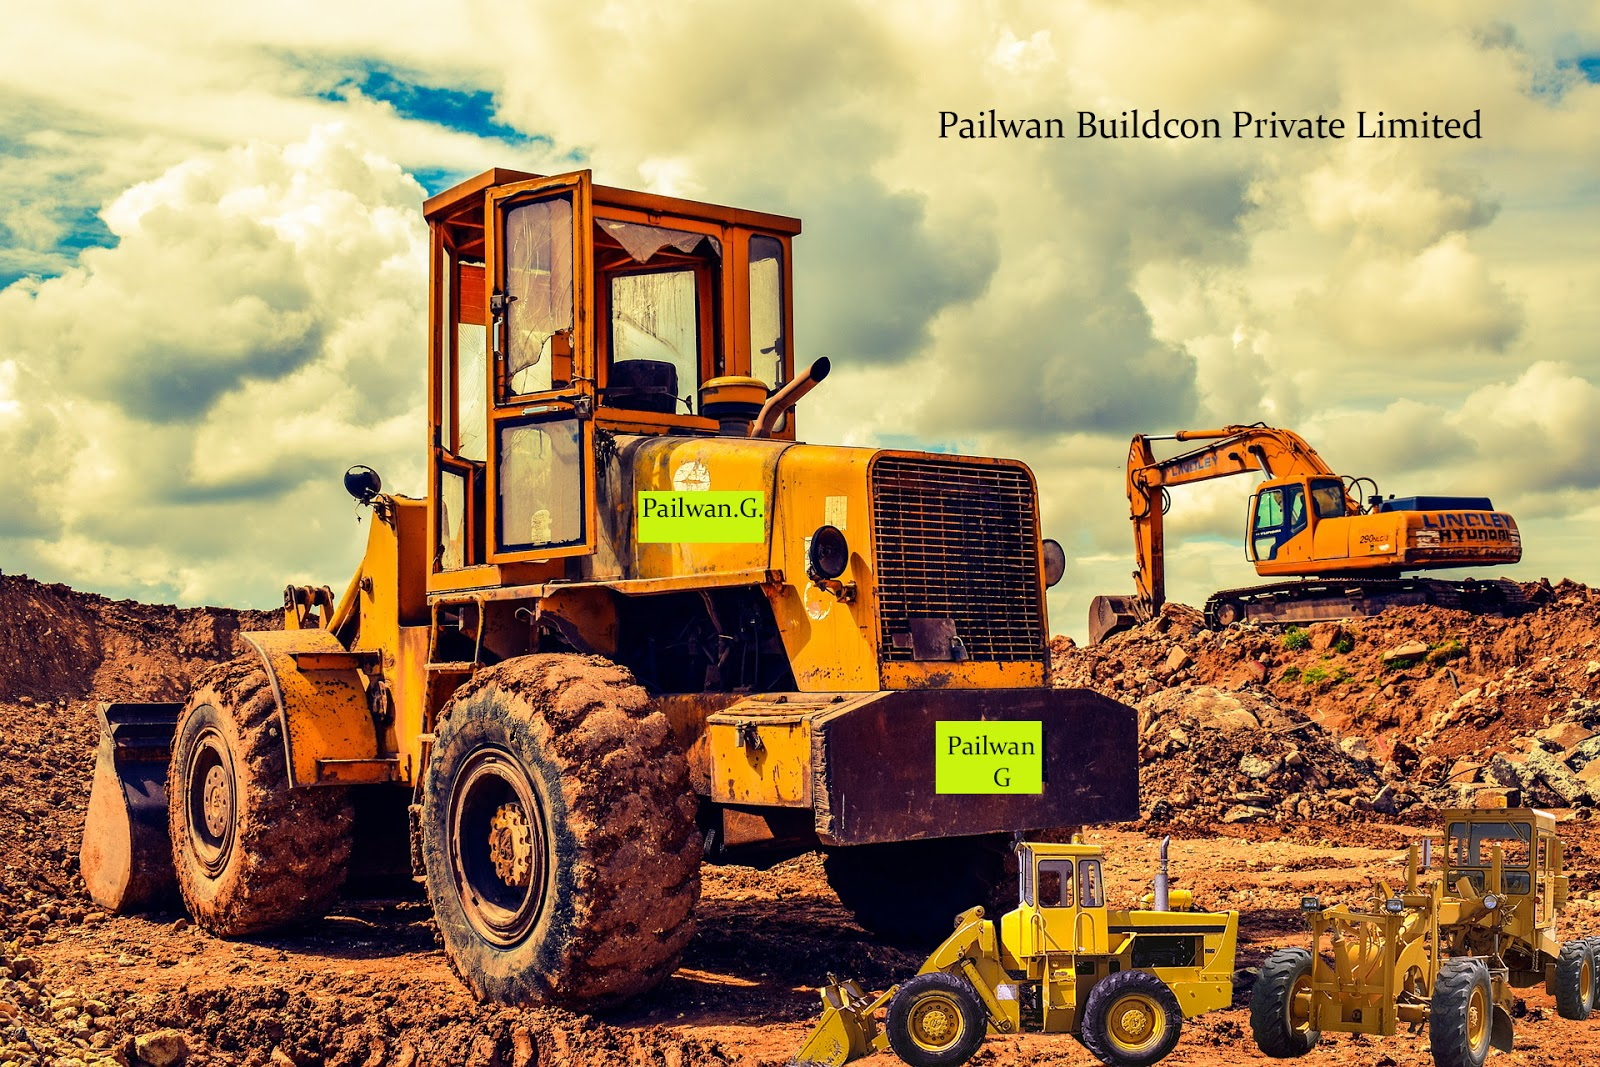 Services of Pailwan Buildcon Private Limited, Best Road Construction Company in Jamakhandi Bagalkot Karnataka,Best Road Contractor in Jamakhandi Bagalkot Karnataka,Best Building Contractors in Jamakhandi Bagalkot Karnataka,Best Civil Contractors in Jamakhandi Bagalkot Karnataka,Best Contractors in Jamakhandi Bagalkot Karnataka,Best Excavating Service Company in Jamakhandi bagalkot Karnataka,Best General Contracting Company in Jamakhandi bagalkot Karnataka,Best Mine Development Company in Jamakhandi Bagalkot Karnataka,Best Water Lines Construction Company in Jamakhandi Bagalkot Karnataka,Best Sewer Lines Construction Company in Jamakhandi Bagalkot Karnataka,Best Logging Service Company in Jamakhandi Bagalkot Karnataka,Best Logging Service Company in Jamakhandi Bagalkot Karnataka,Best Drilling and Blasting Service Company in Jamakhandi Bagalkot Karnataka,Best Clearing and Hauling Service Company in Jamakhandi Bagalkot Karnataka,Best Envirocleanup  Service Company in Jamakhandi Bagalkot Karnataka, contractors in Karnataka, road contractors in Karnataka, civil contractors in Karnataka, civil contractors in bagalkot, civil contractors in jamakhandi, civil contractors in athani, civil contractors in near me, road construction contractors in Karnataka, road construction contractors in jamakhandi, road construction contractors in bahalkot, road construction contractors in bijapur, road construction contractors in athani, top contractors in Karnataka, top contractors in jamakhandi, top contractors in bagalkot, top contractors in athani, top civil contractors in jamakhandi, top civil contractors in belagavi, top civil contractors in athani,  water supply contractors in Karnataka, water supply contractors in jamakhandi,  water supply contractors in bagalkot, waterproofing contractors in jamakhandi, waterproofing contractors in Karnataka, waterproofing contractors, road building materials, road building equipments, road building equipments for rent, road building equipments in 